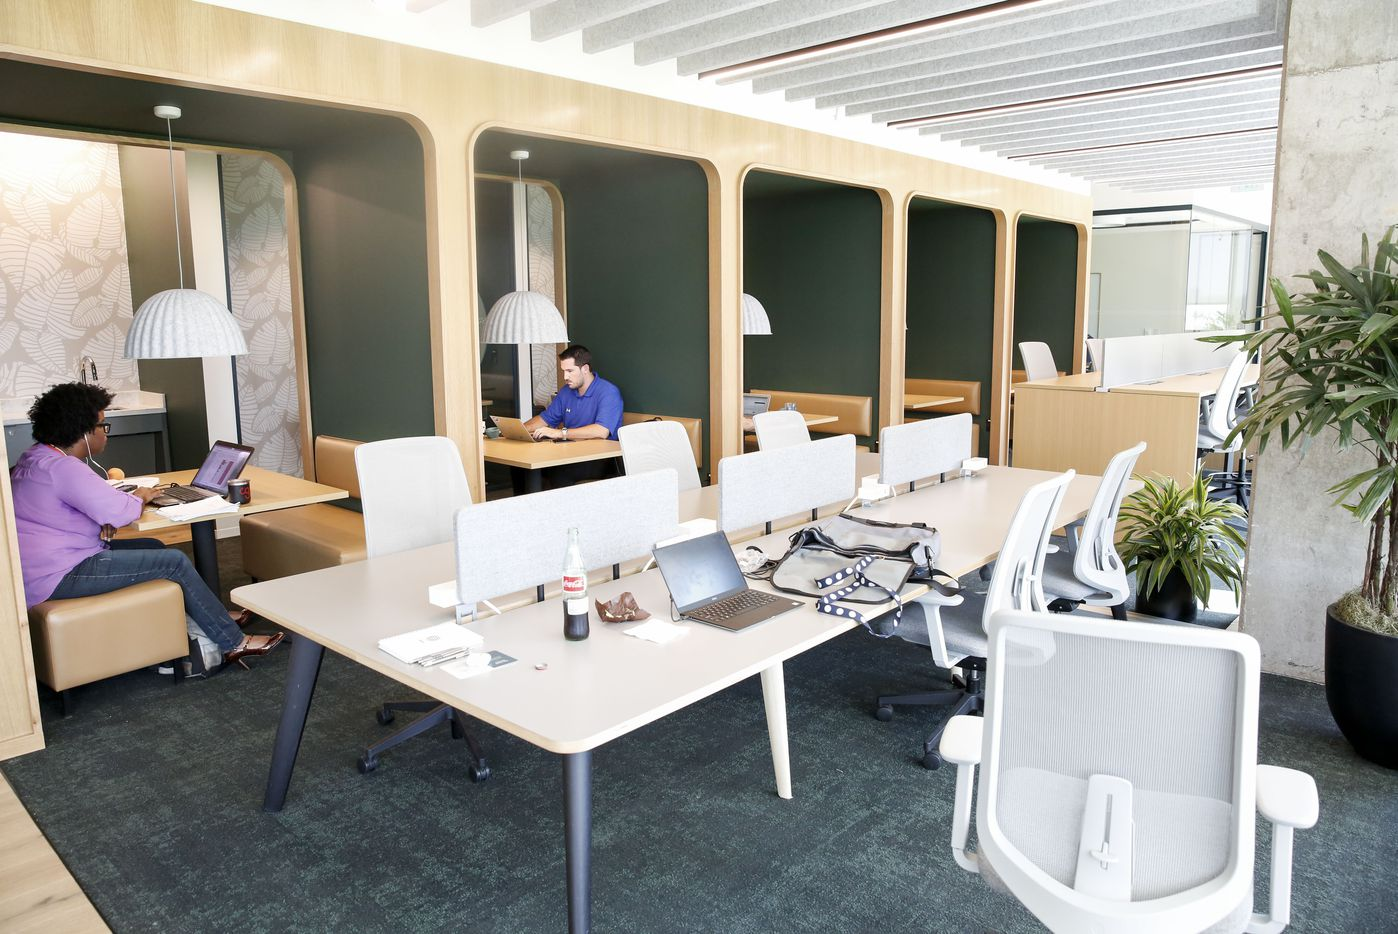 Some of the many different styles of coworking spaces at Hana.